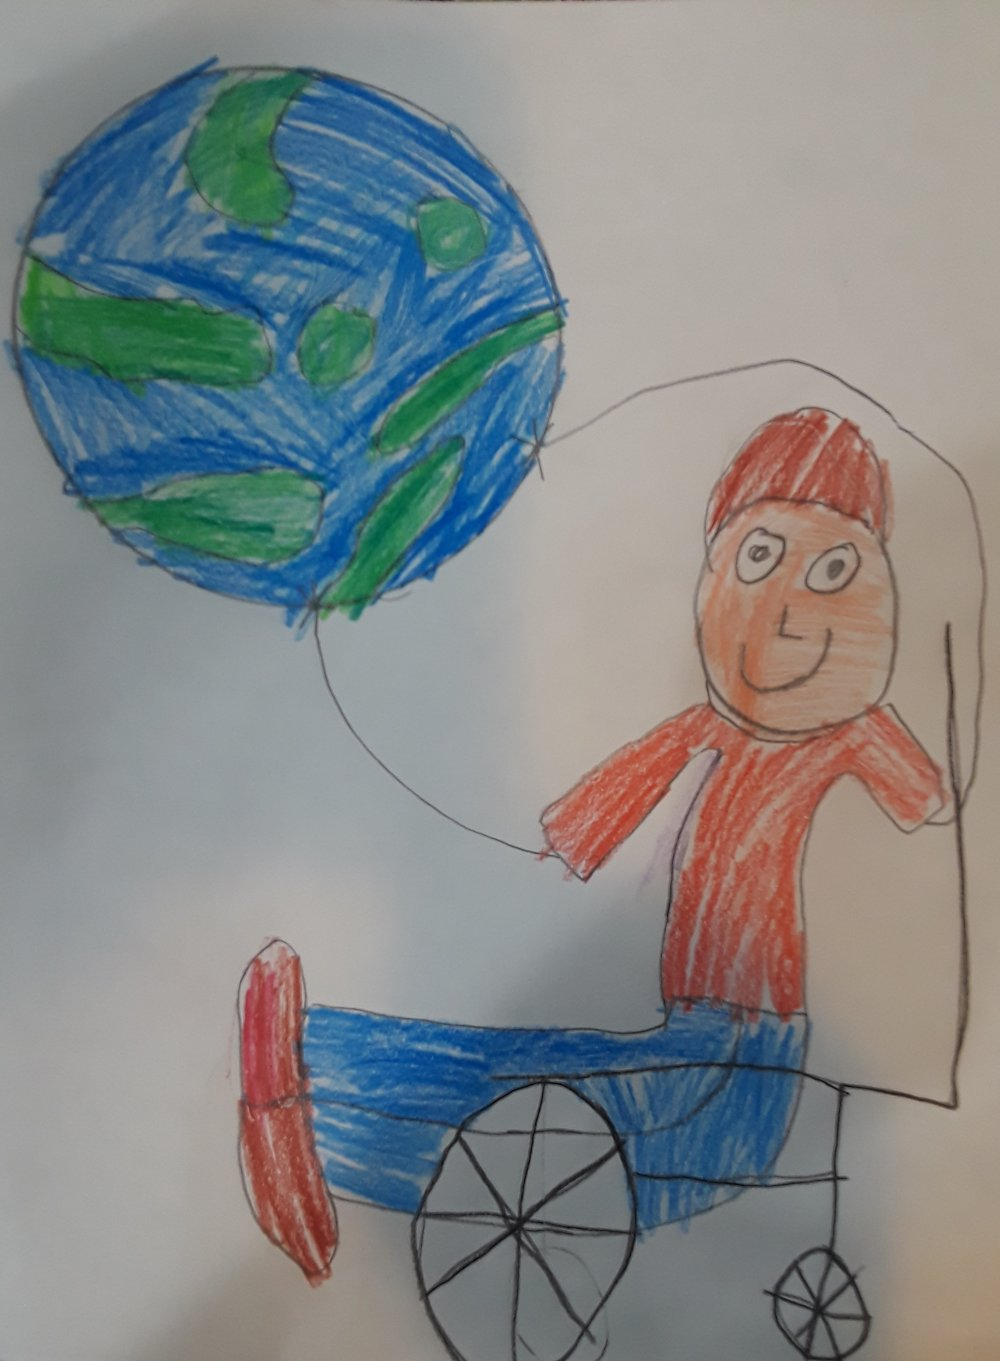 025 - THE WORLD IS YOURS by Joshua Hernandez (age 7) in Waddell, Arizona, USA